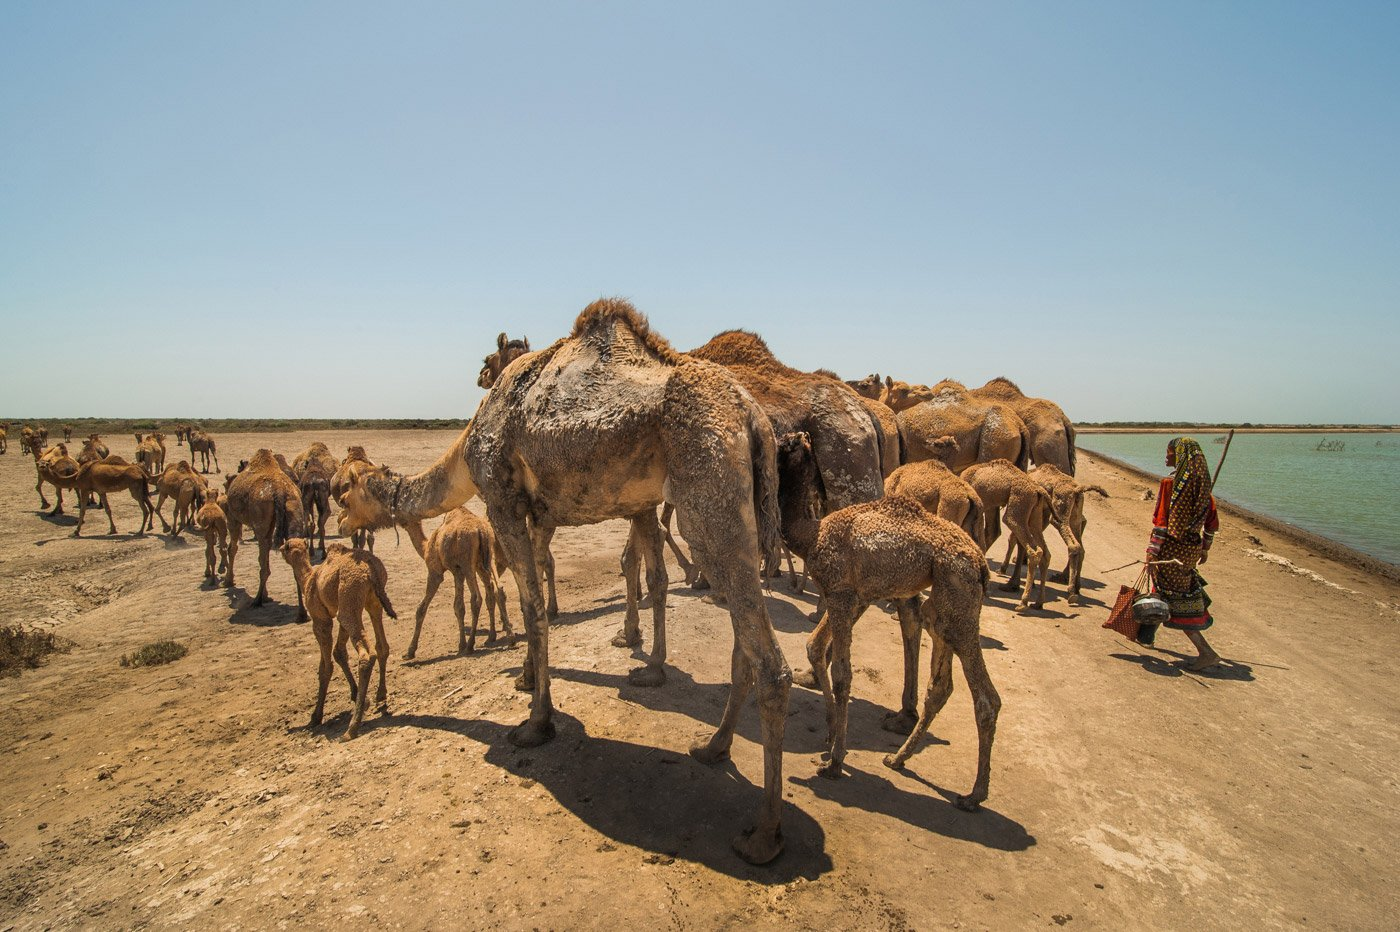 a woman walking with her herd of Kharai camels in search of water.